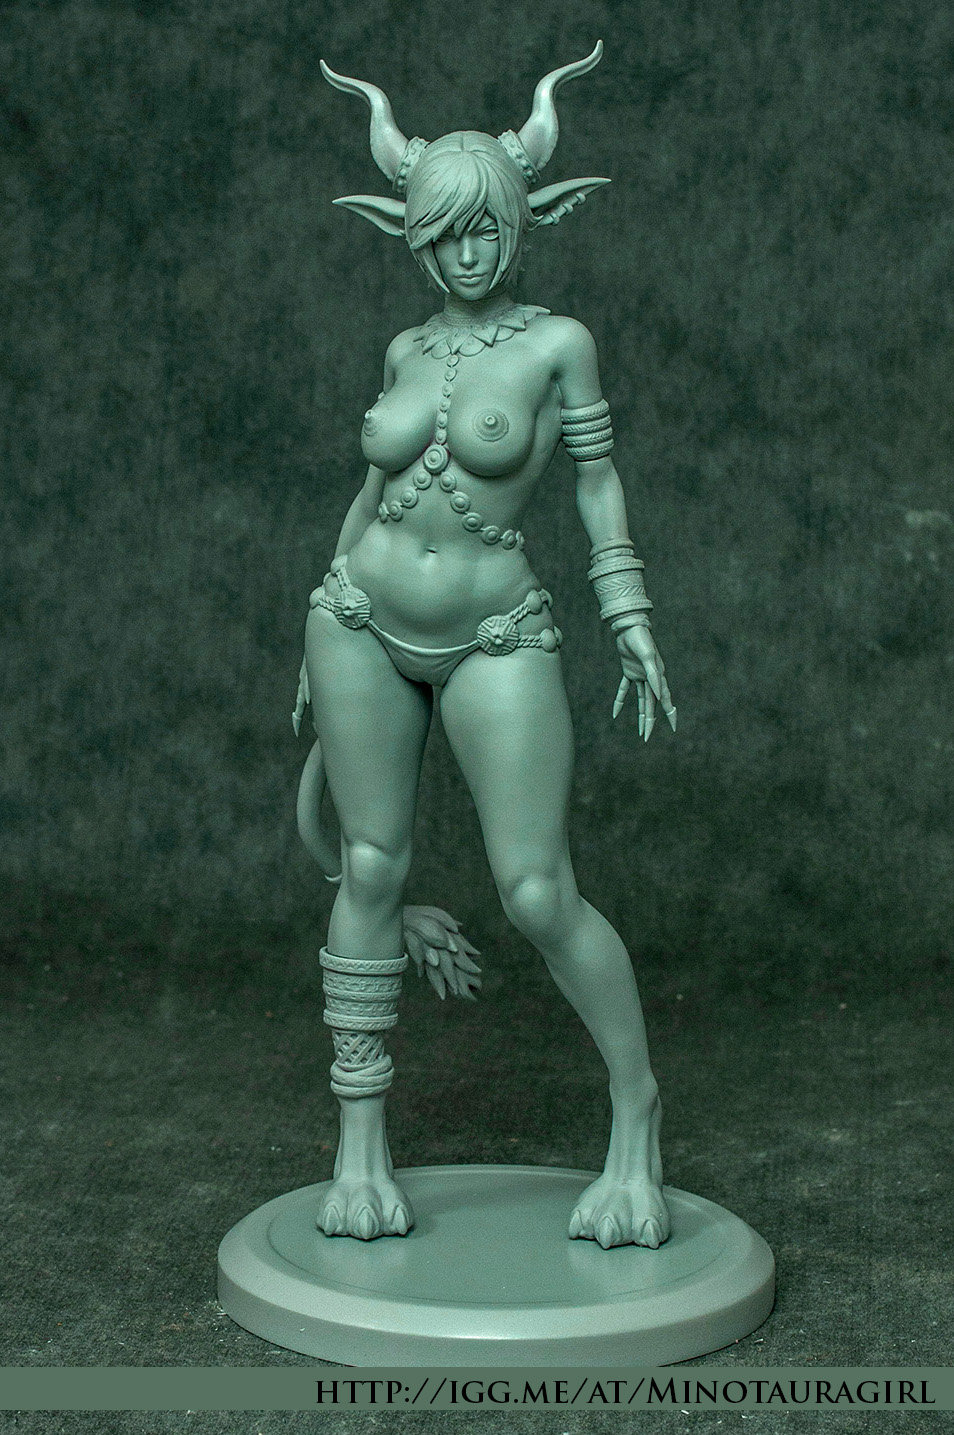 Cast Of Our Figurine, Nipples Are Covered With Golden Plates (See Painted Variant/ Concept Art)